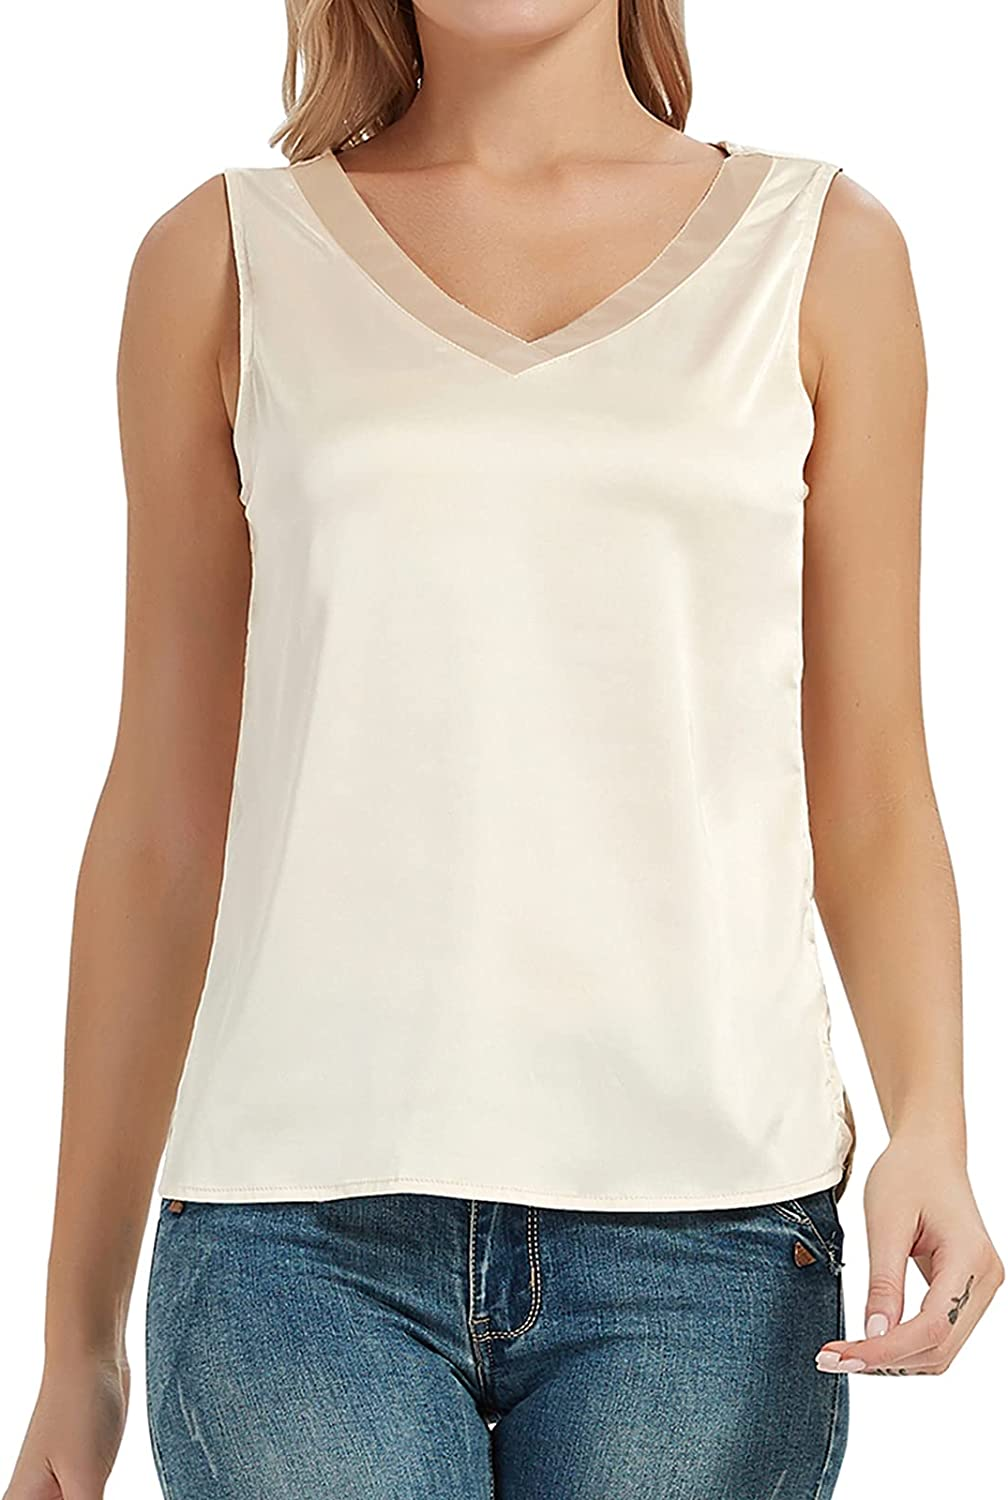 Miqieer Women's Silk Tank Top Sheer V Neck Satin Cami Shirts Casual Loose Fit Vest Sleeveles Blouse